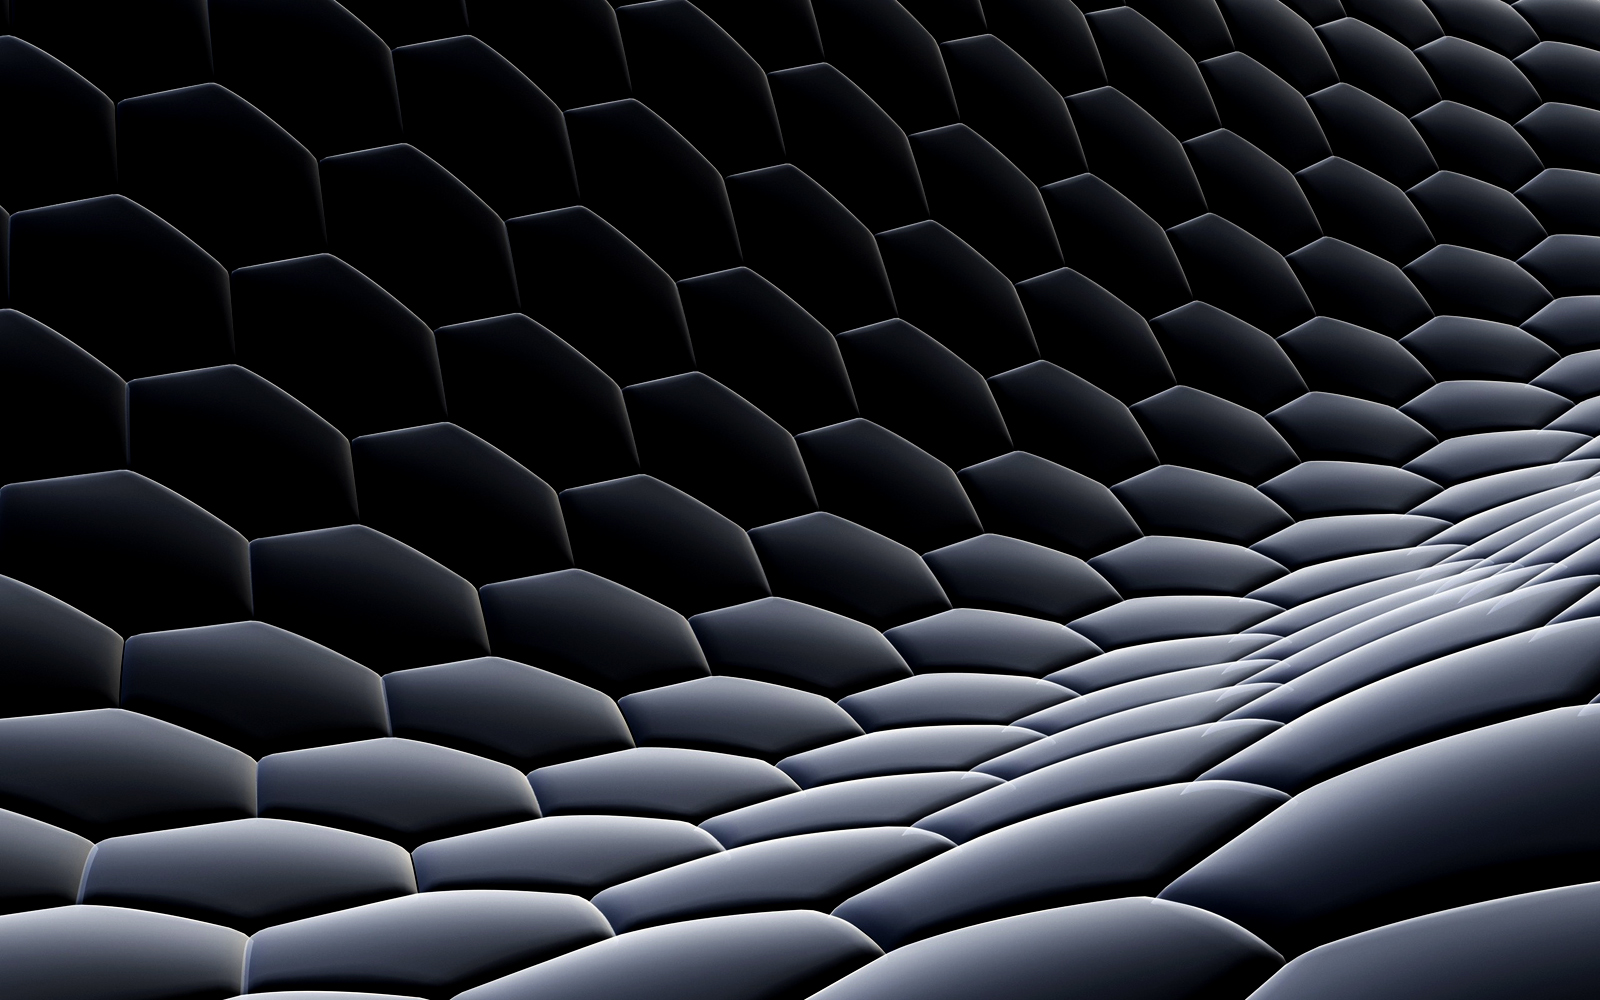 3D Hexagon Blocks HD Wallpapers ~ Desktop Wallpaper